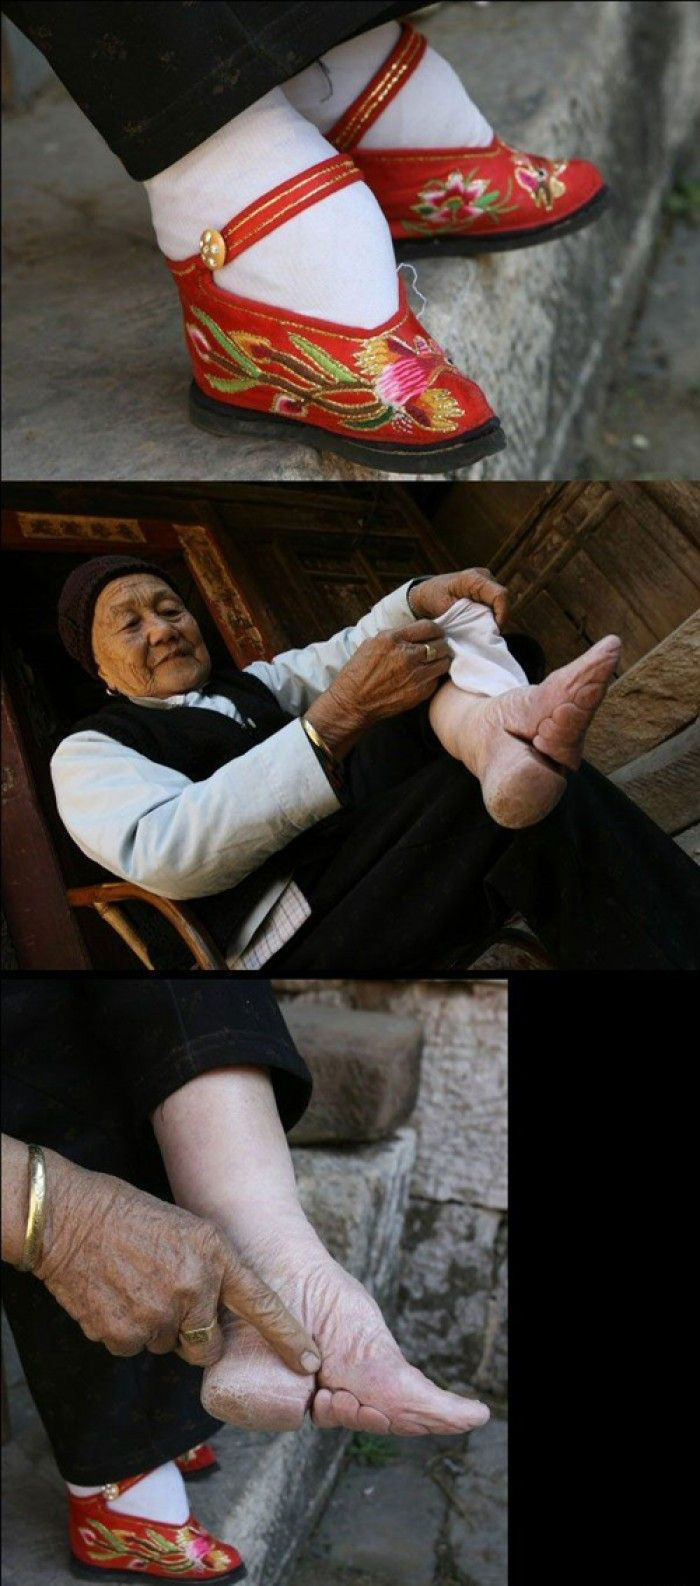 In many Asian countries, people have believe that small feet of women are one of the most important traits that men looks for. Of course this is not really going on as seriously as 50 years ago. Here's a picture of an old woman who used to wear 'lotus shoes' for appeal.